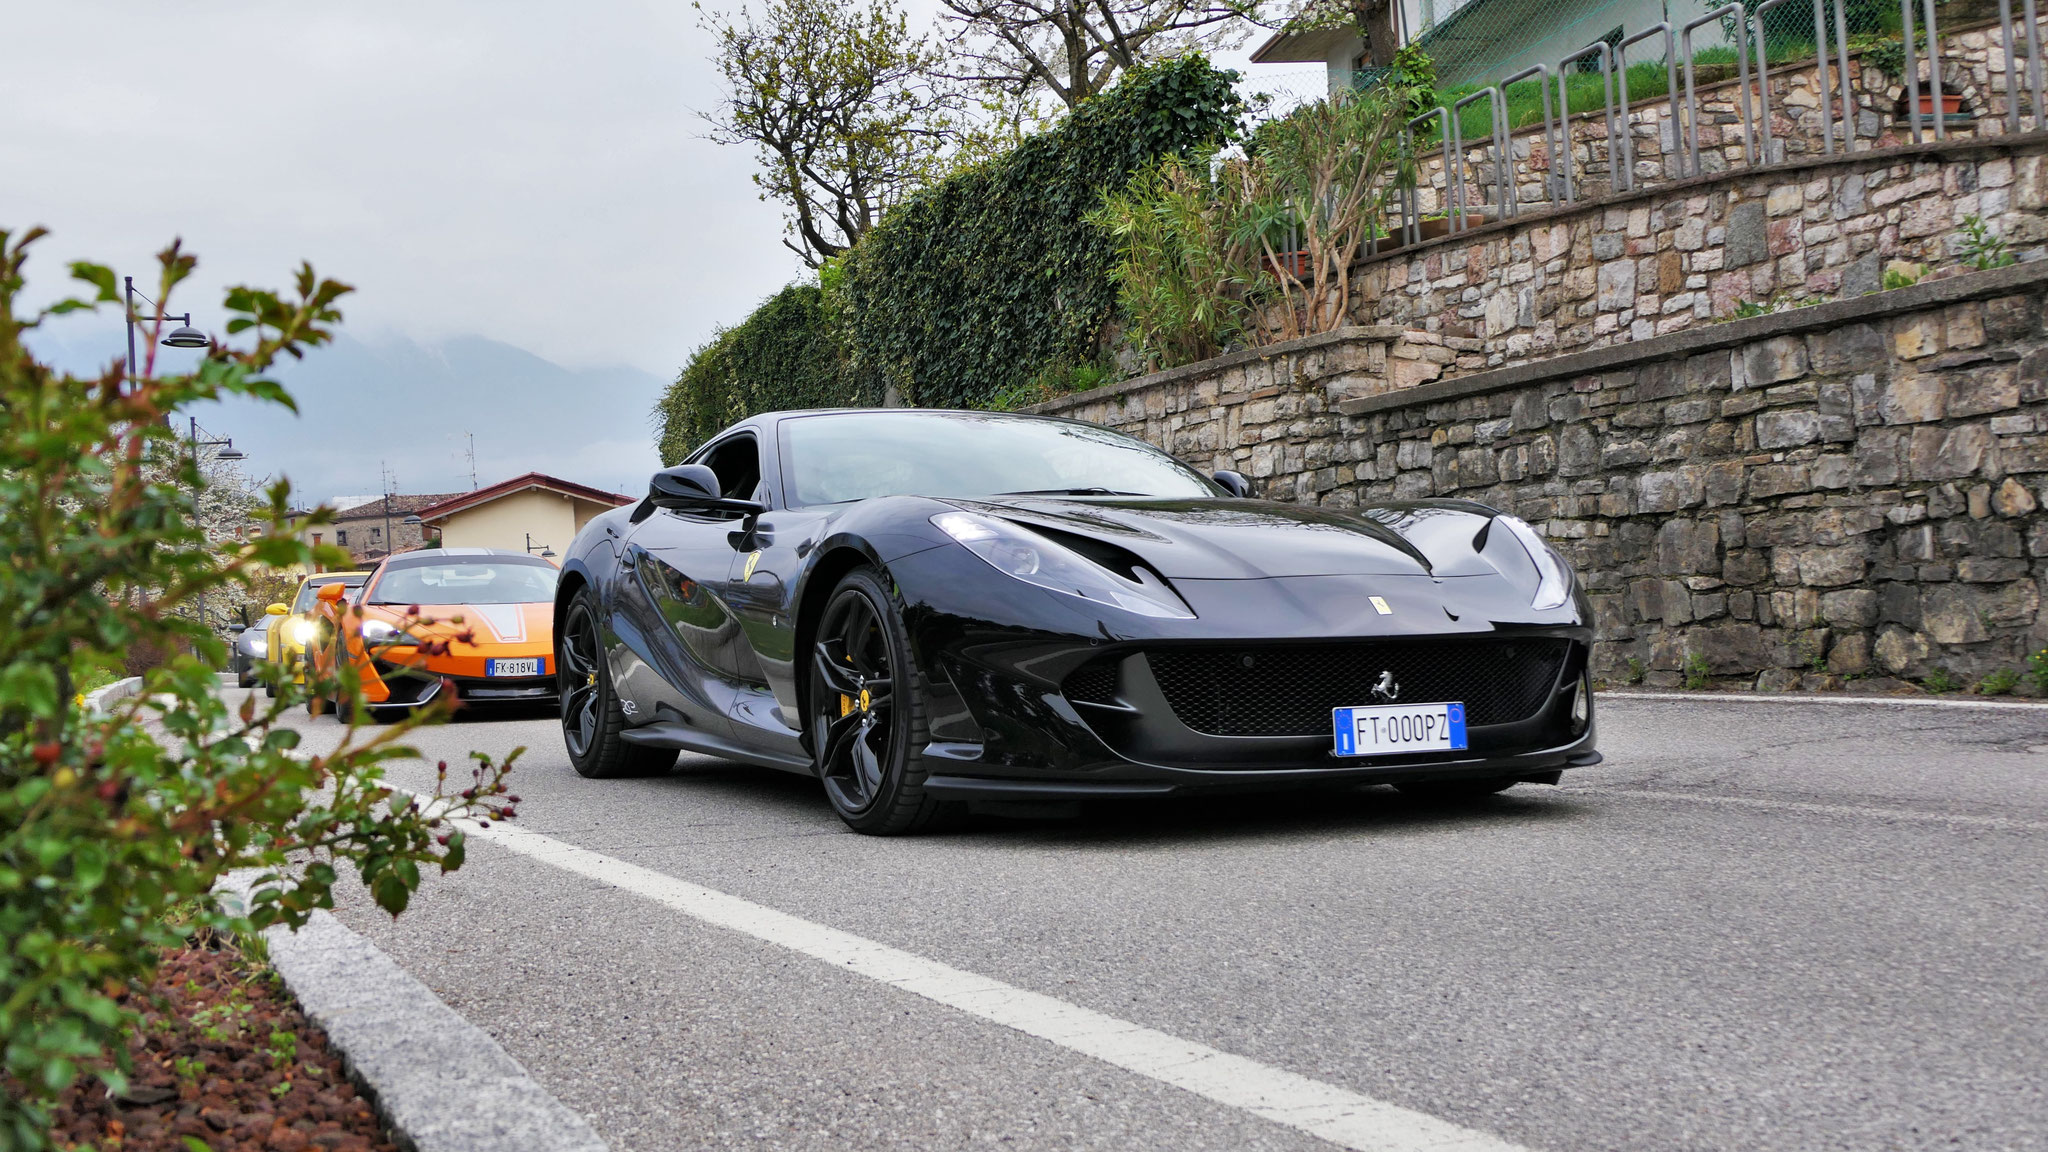 Ferrari 812 Superfast - FT-000-PZ (ITA)